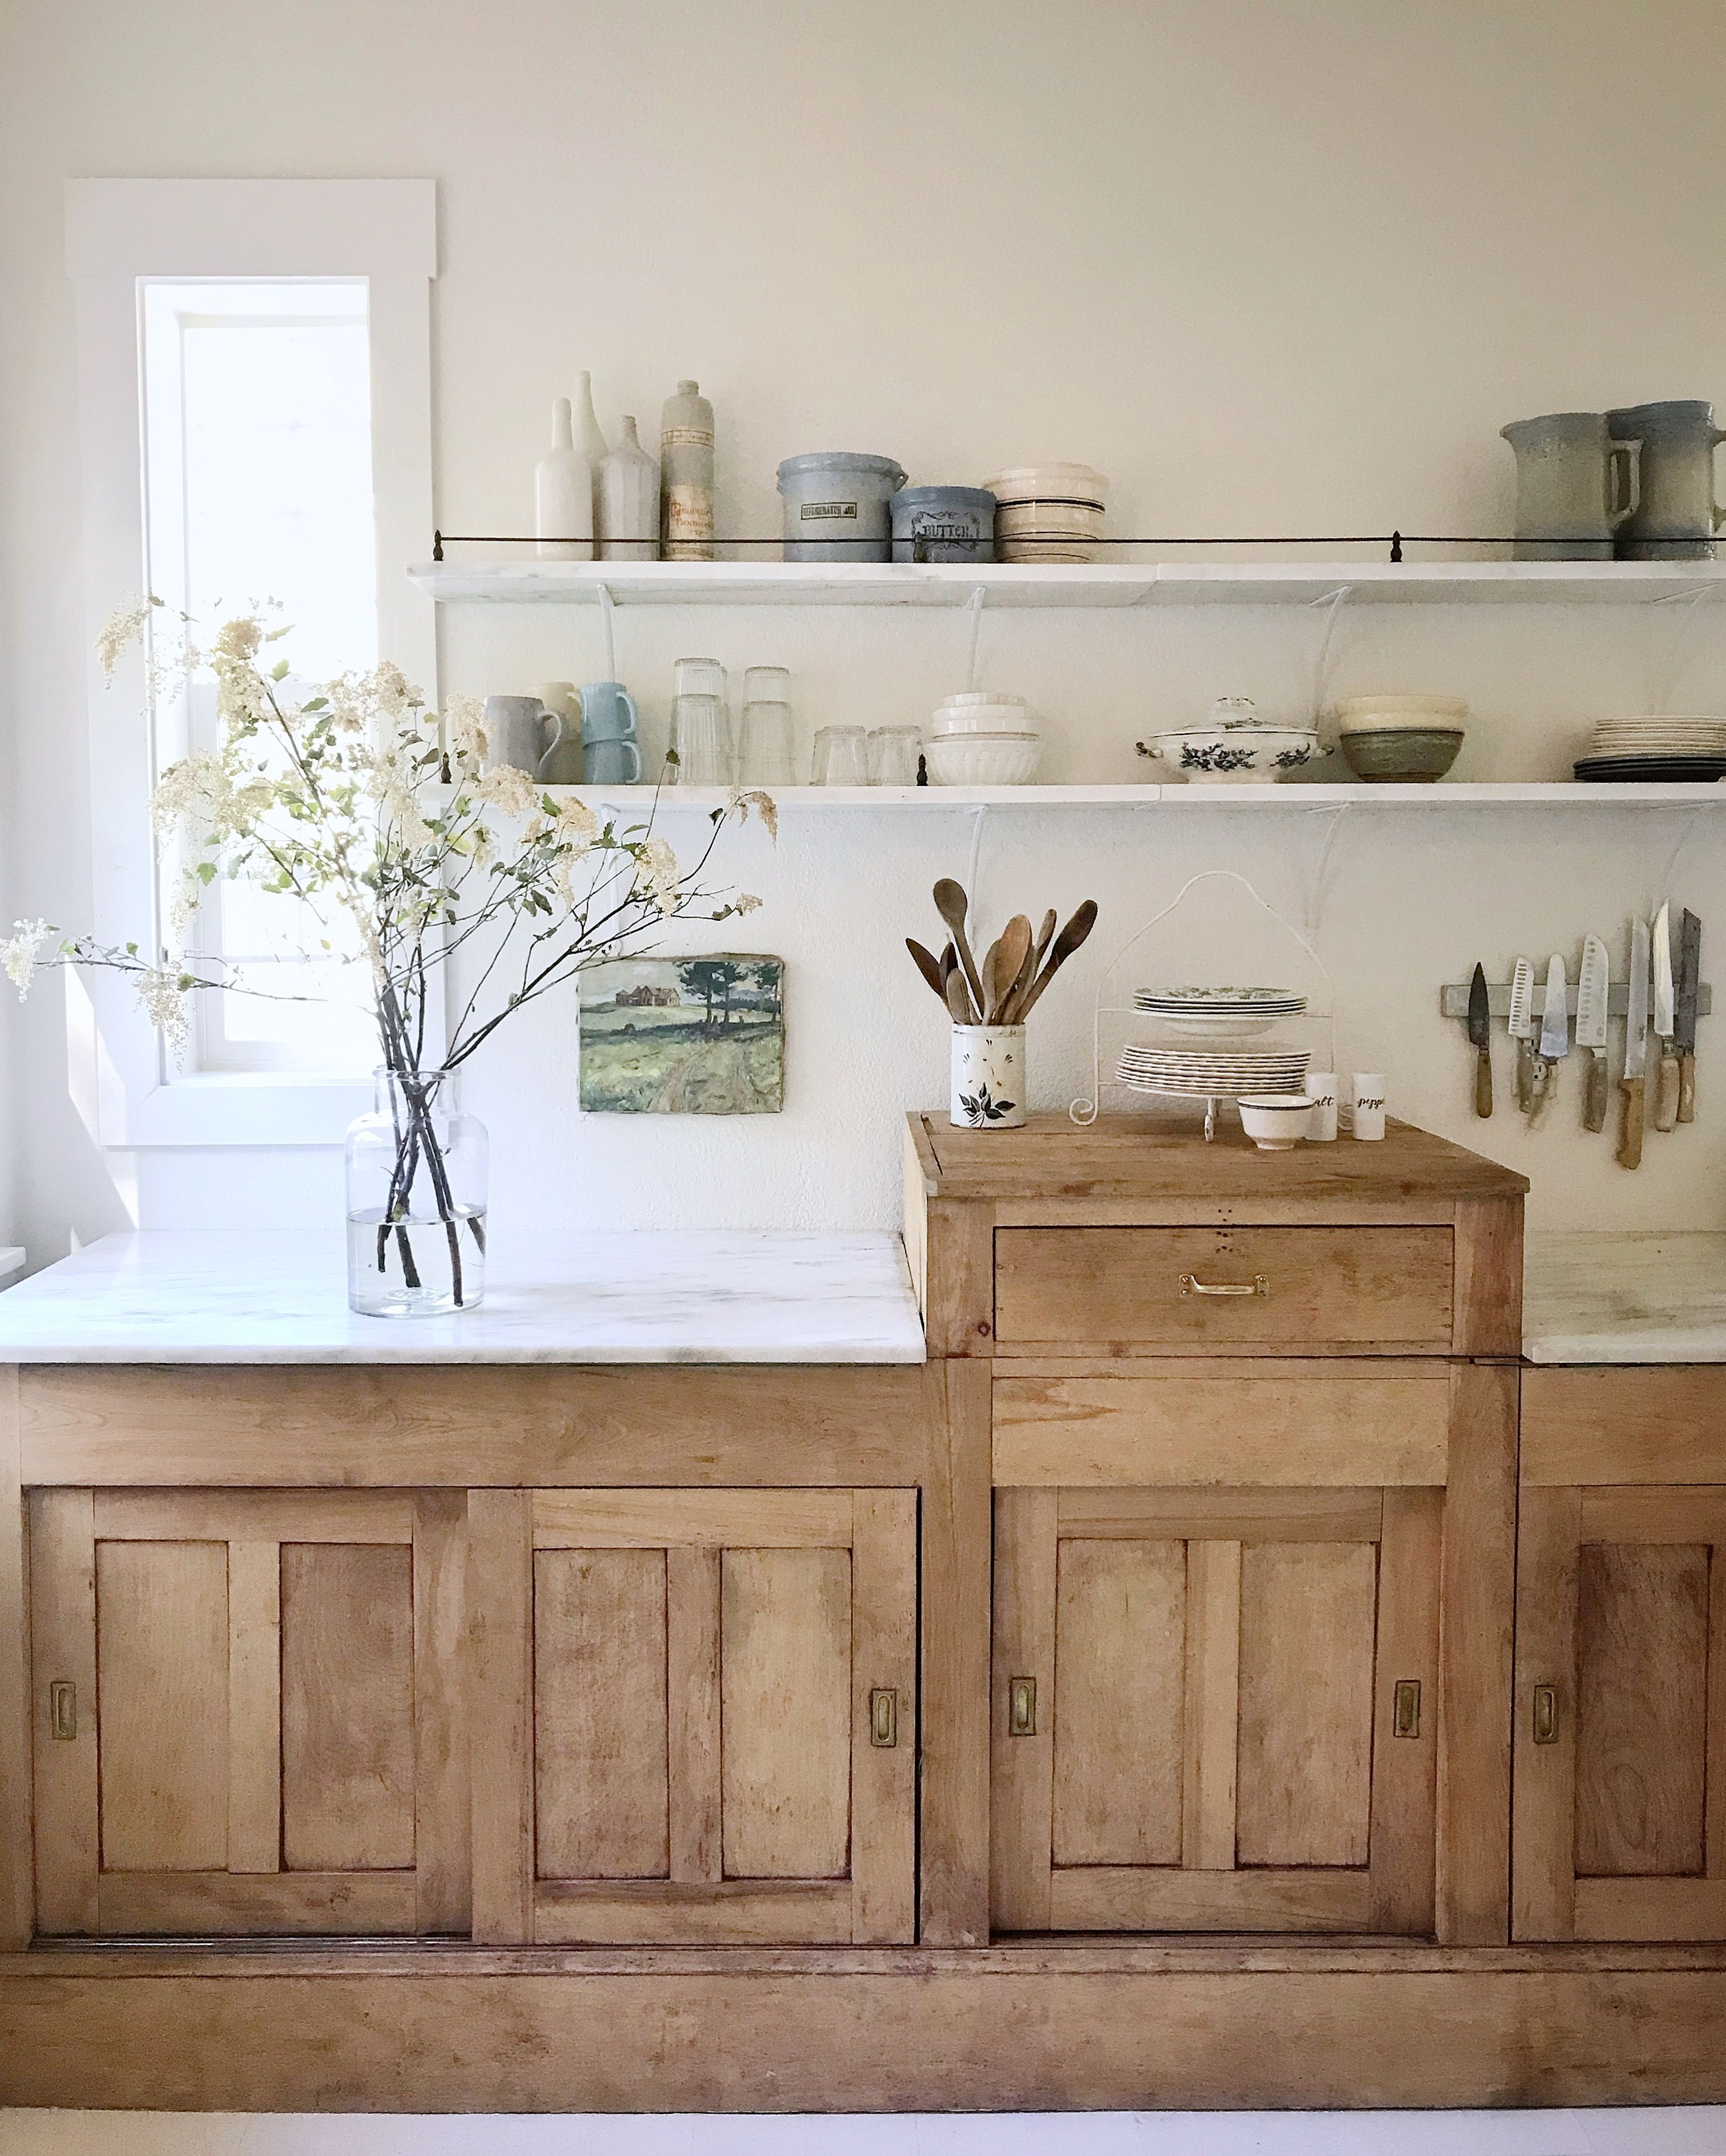 Themarketbeautiful Vintage Kitchen Inspiration Natural Wood Cabinet Marble Shel Kitchen Ideas Victorian House Wooden Kitchen Cabinets Farmhouse Kitchen Decor